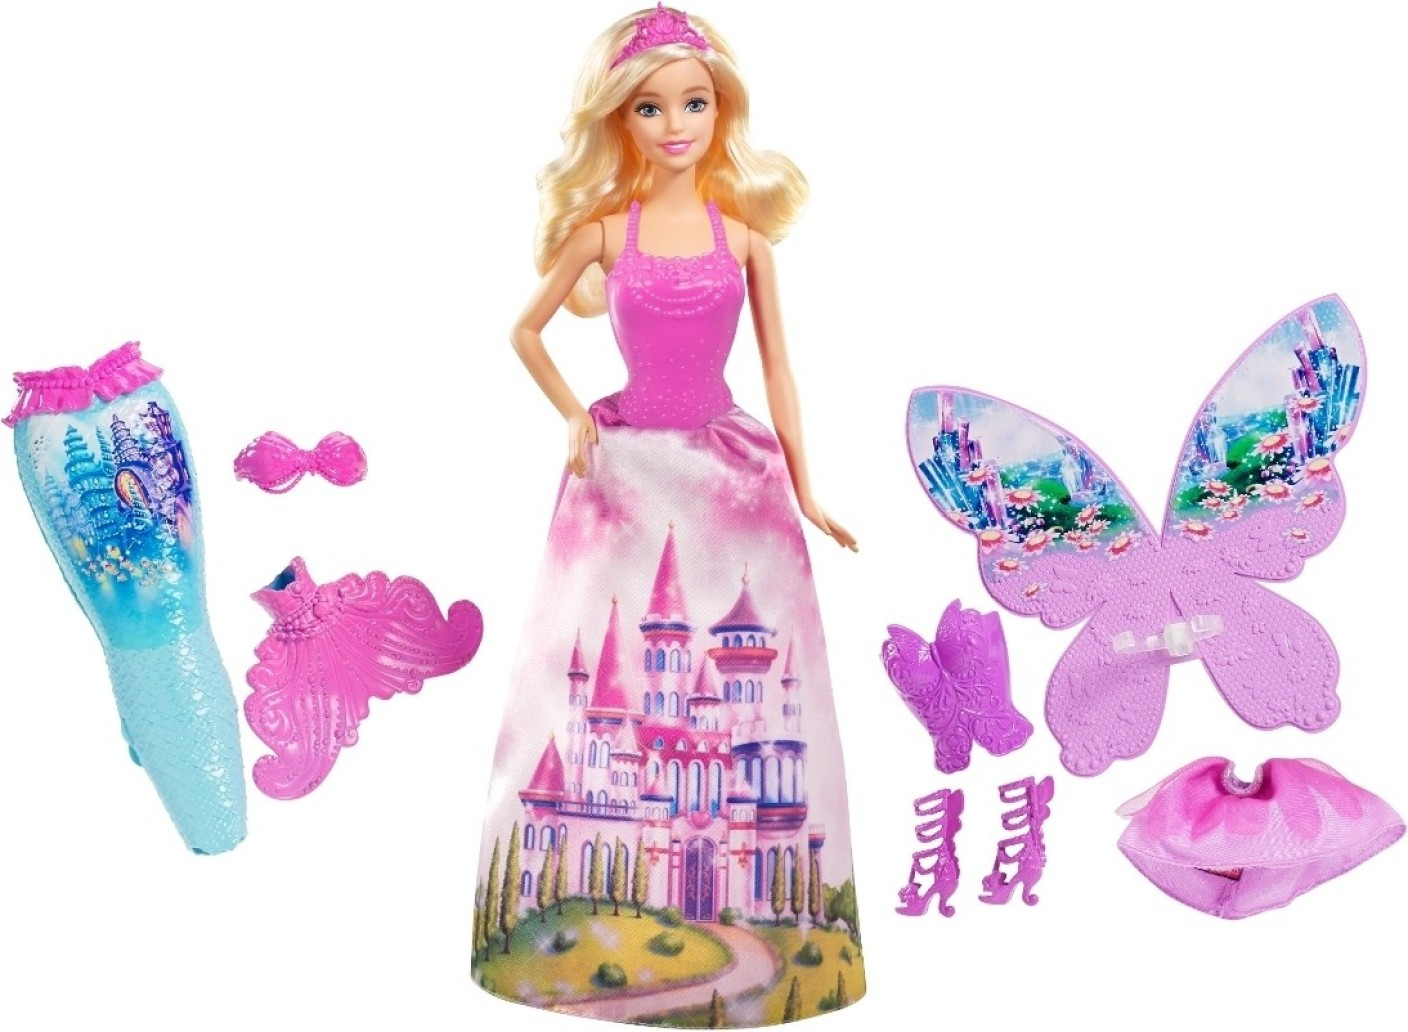 Barbie In A Mermaid Tale Dress Up 2 - Barbie